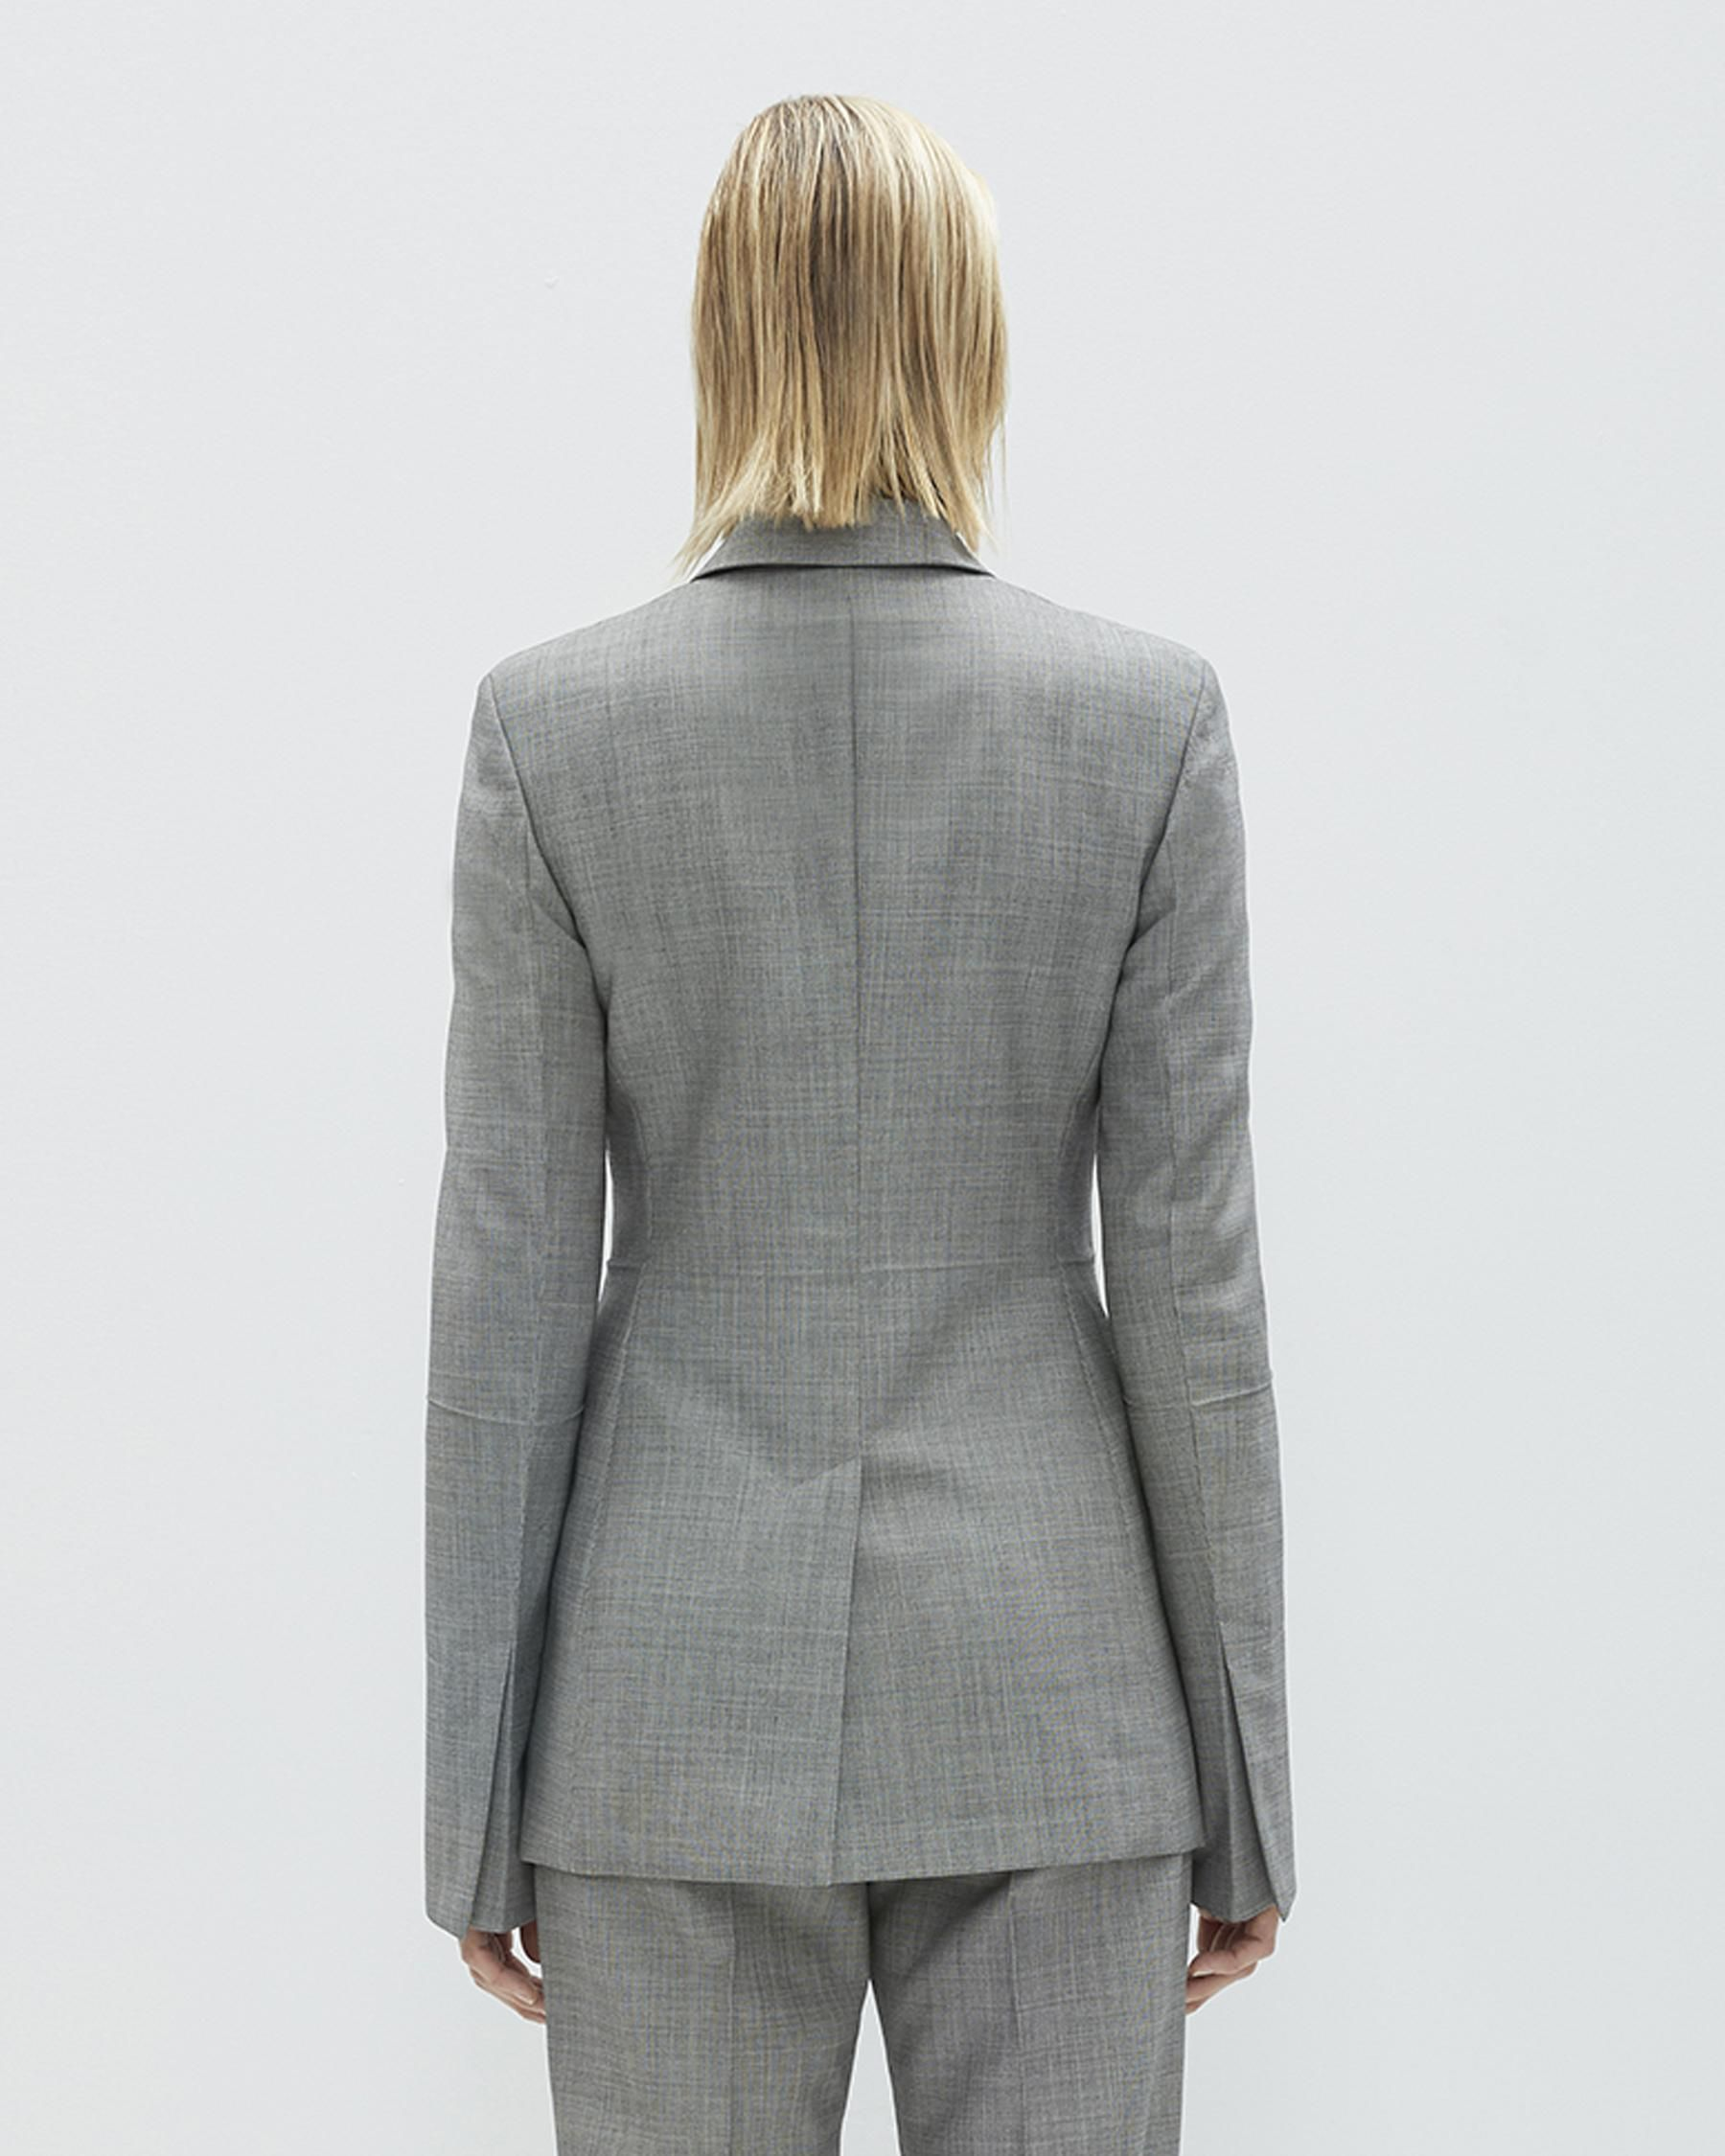 8454c62b8bbb4 DOUBLE BREASTED MOHAIR WOOL BLAZER